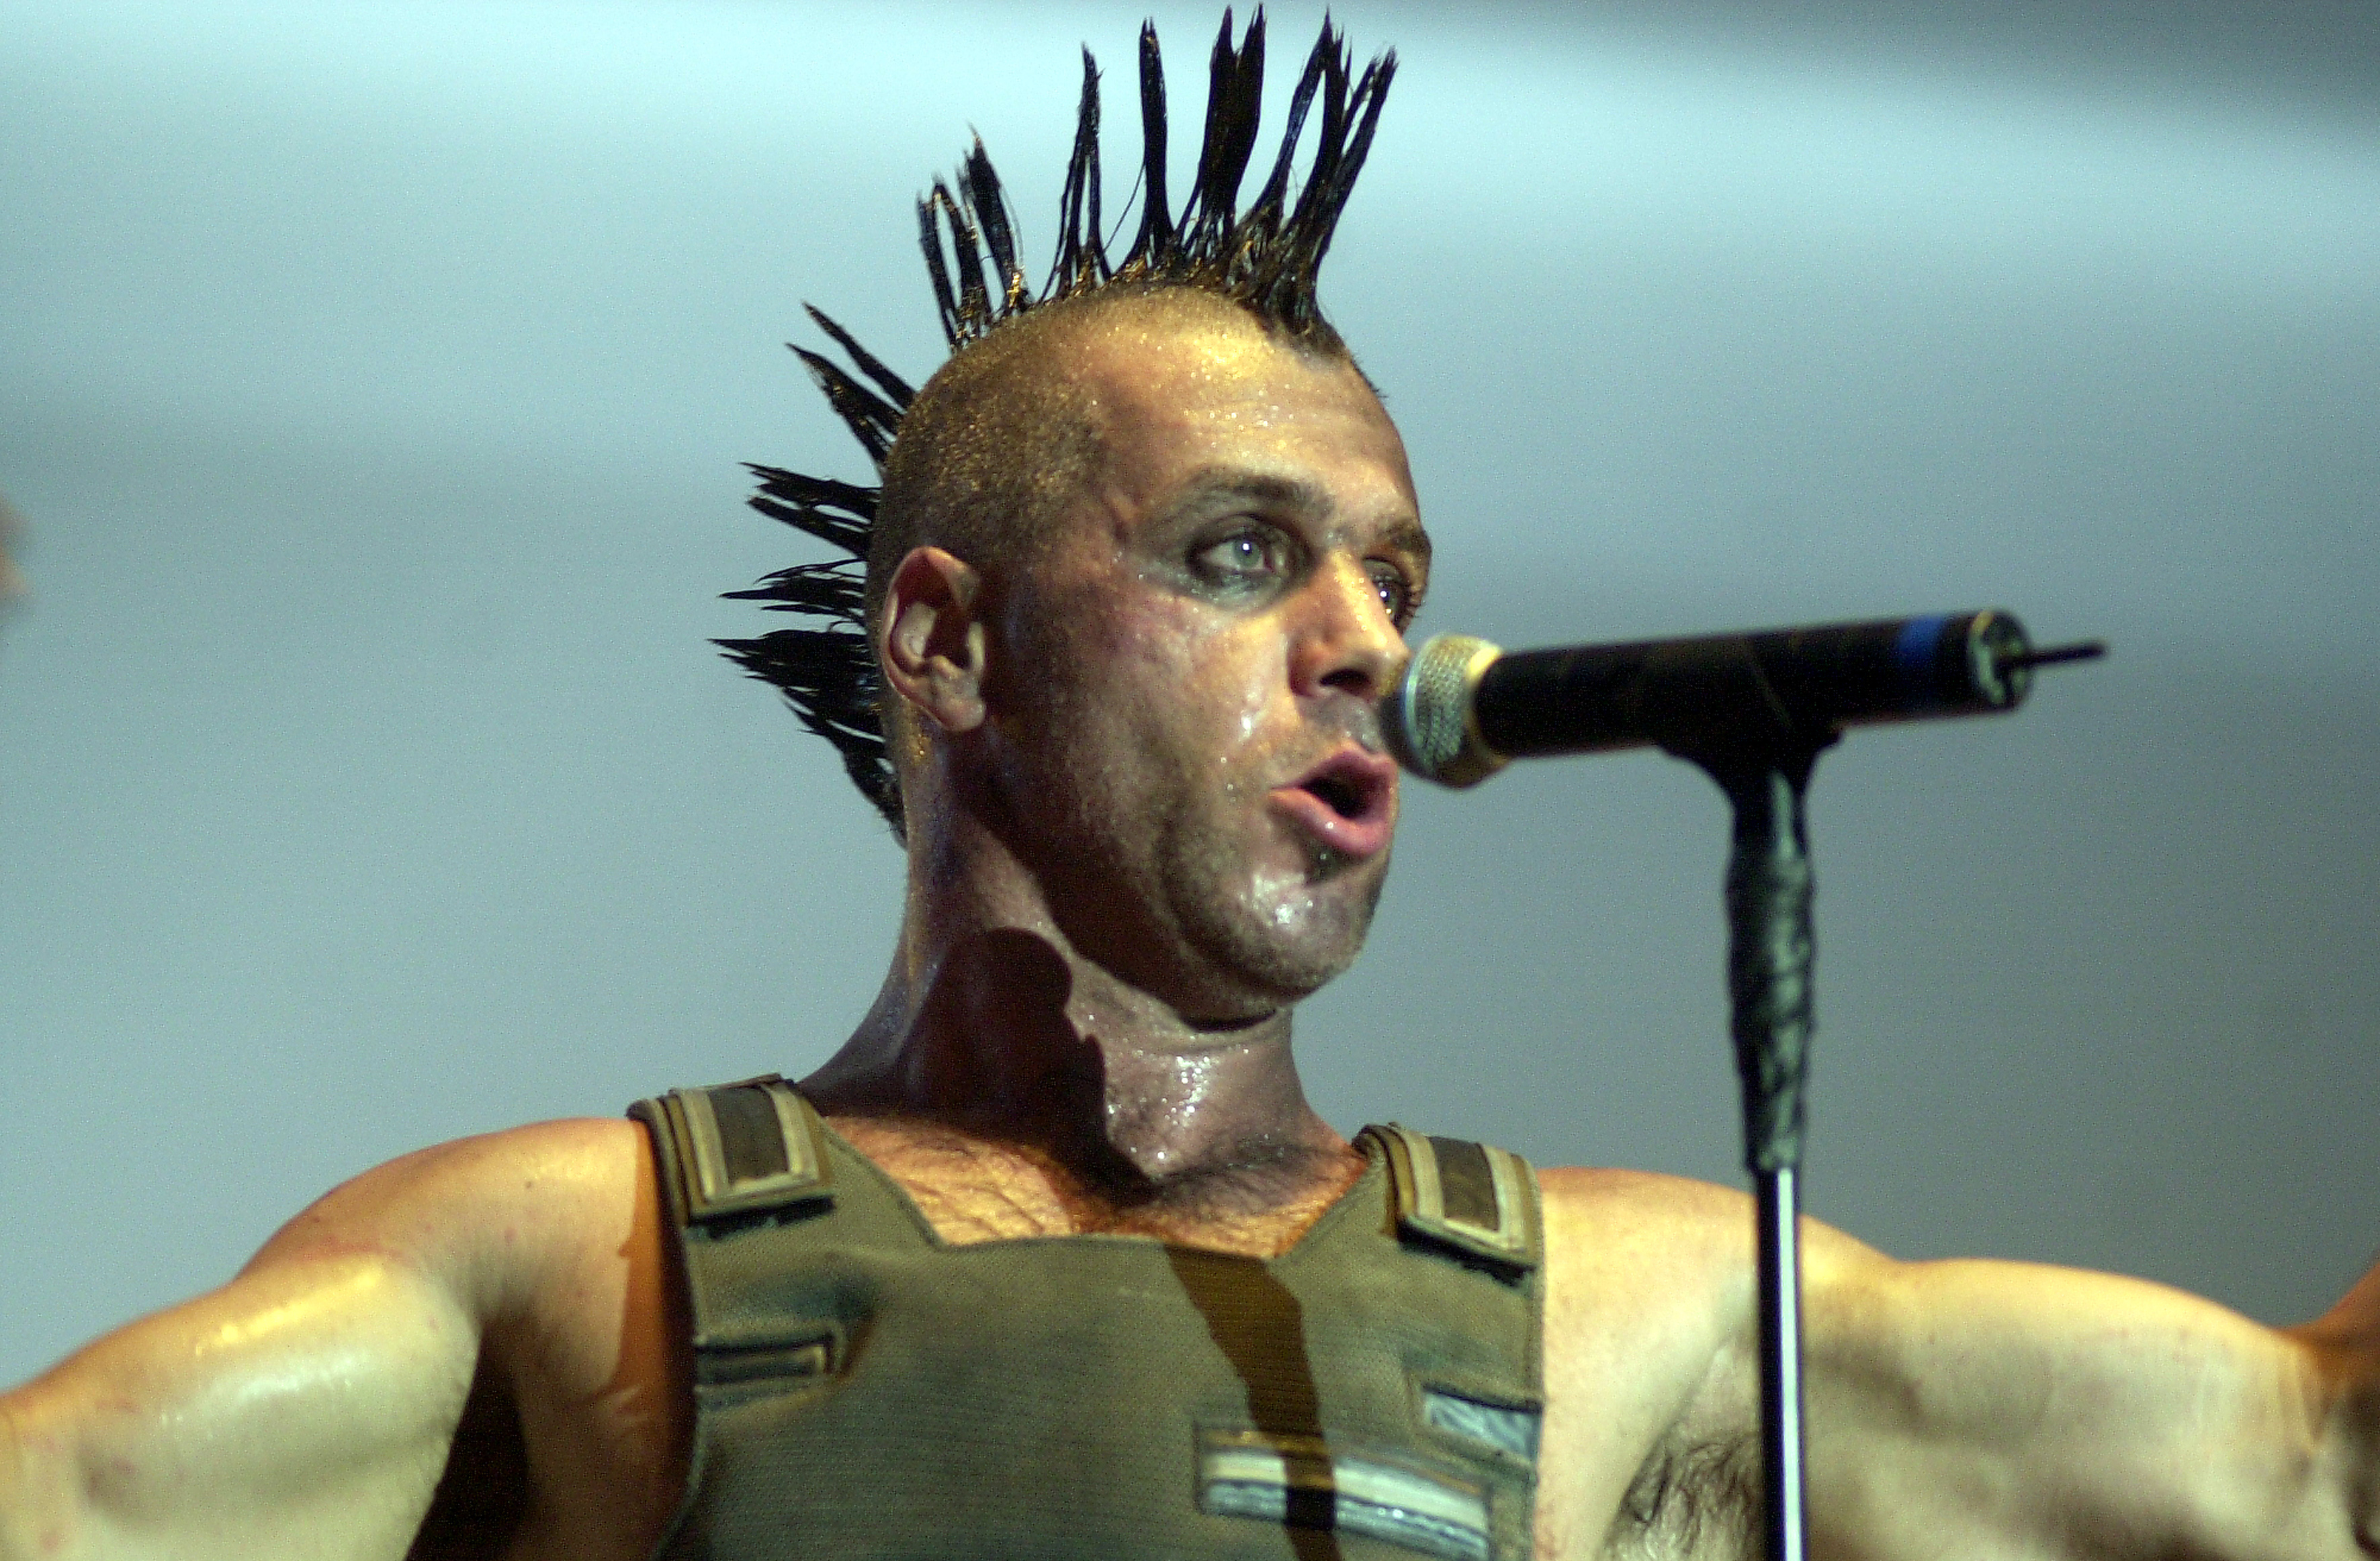 AMSTERDAM, NETHERLANDS - DECEMBER 03: Till Lindemann from Rammstein performs live at Heineken Music Hall in Amsterdam, Nether